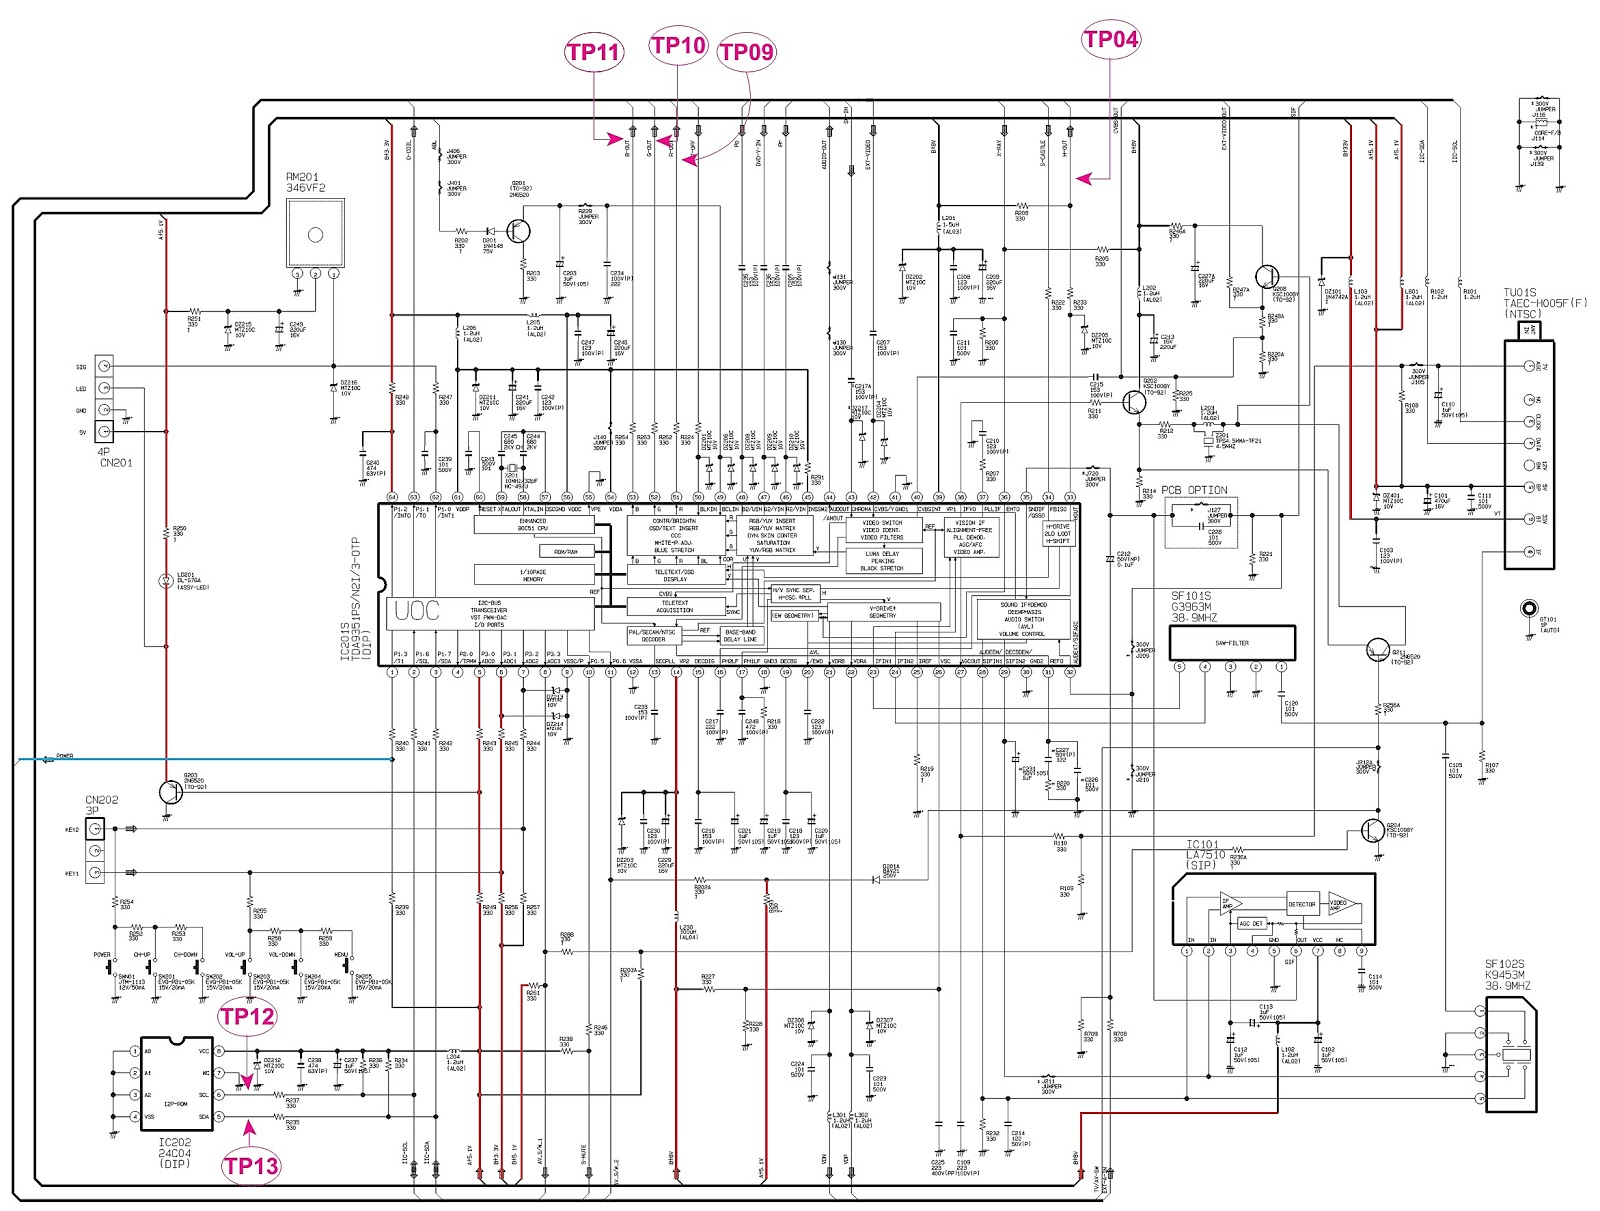 micom samsung cl21k40 crt tv service mode circuit diagram samsung tv wiring diagram at readyjetset.co